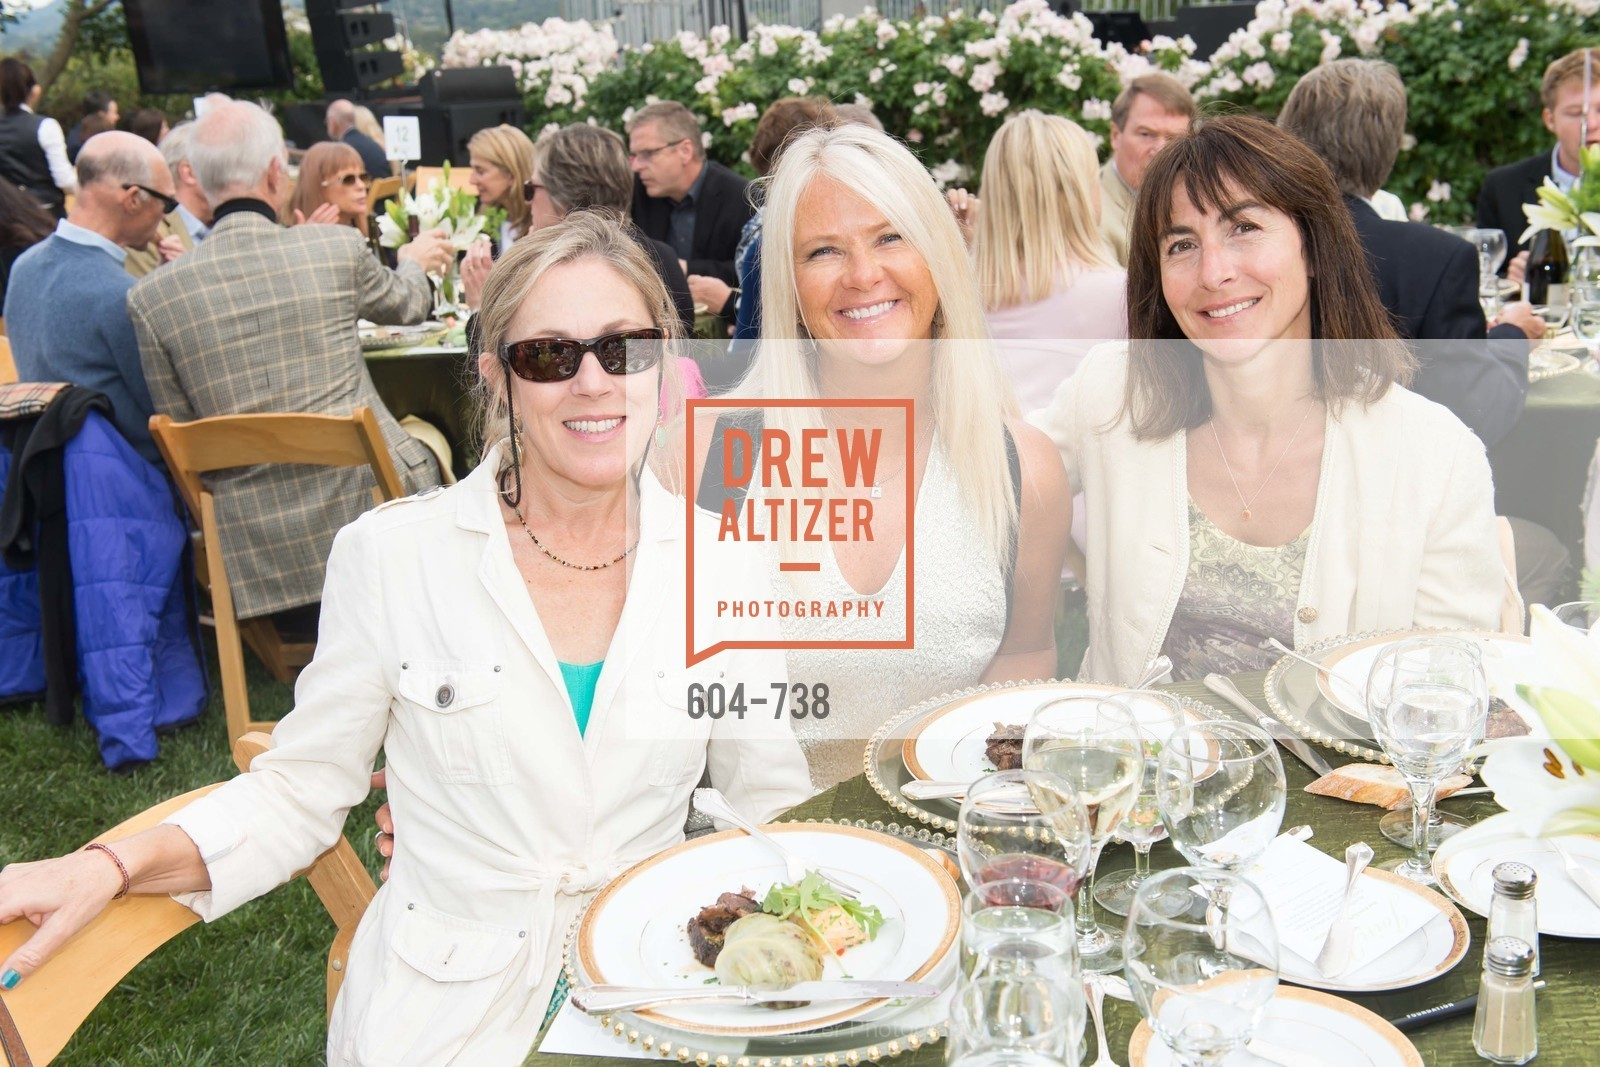 Mary Zarucchi, Tine Norman, Valerie Morgan, LymeAid 2015, US, May 17th, 2015,Drew Altizer, Drew Altizer Photography, full-service agency, private events, San Francisco photographer, photographer california